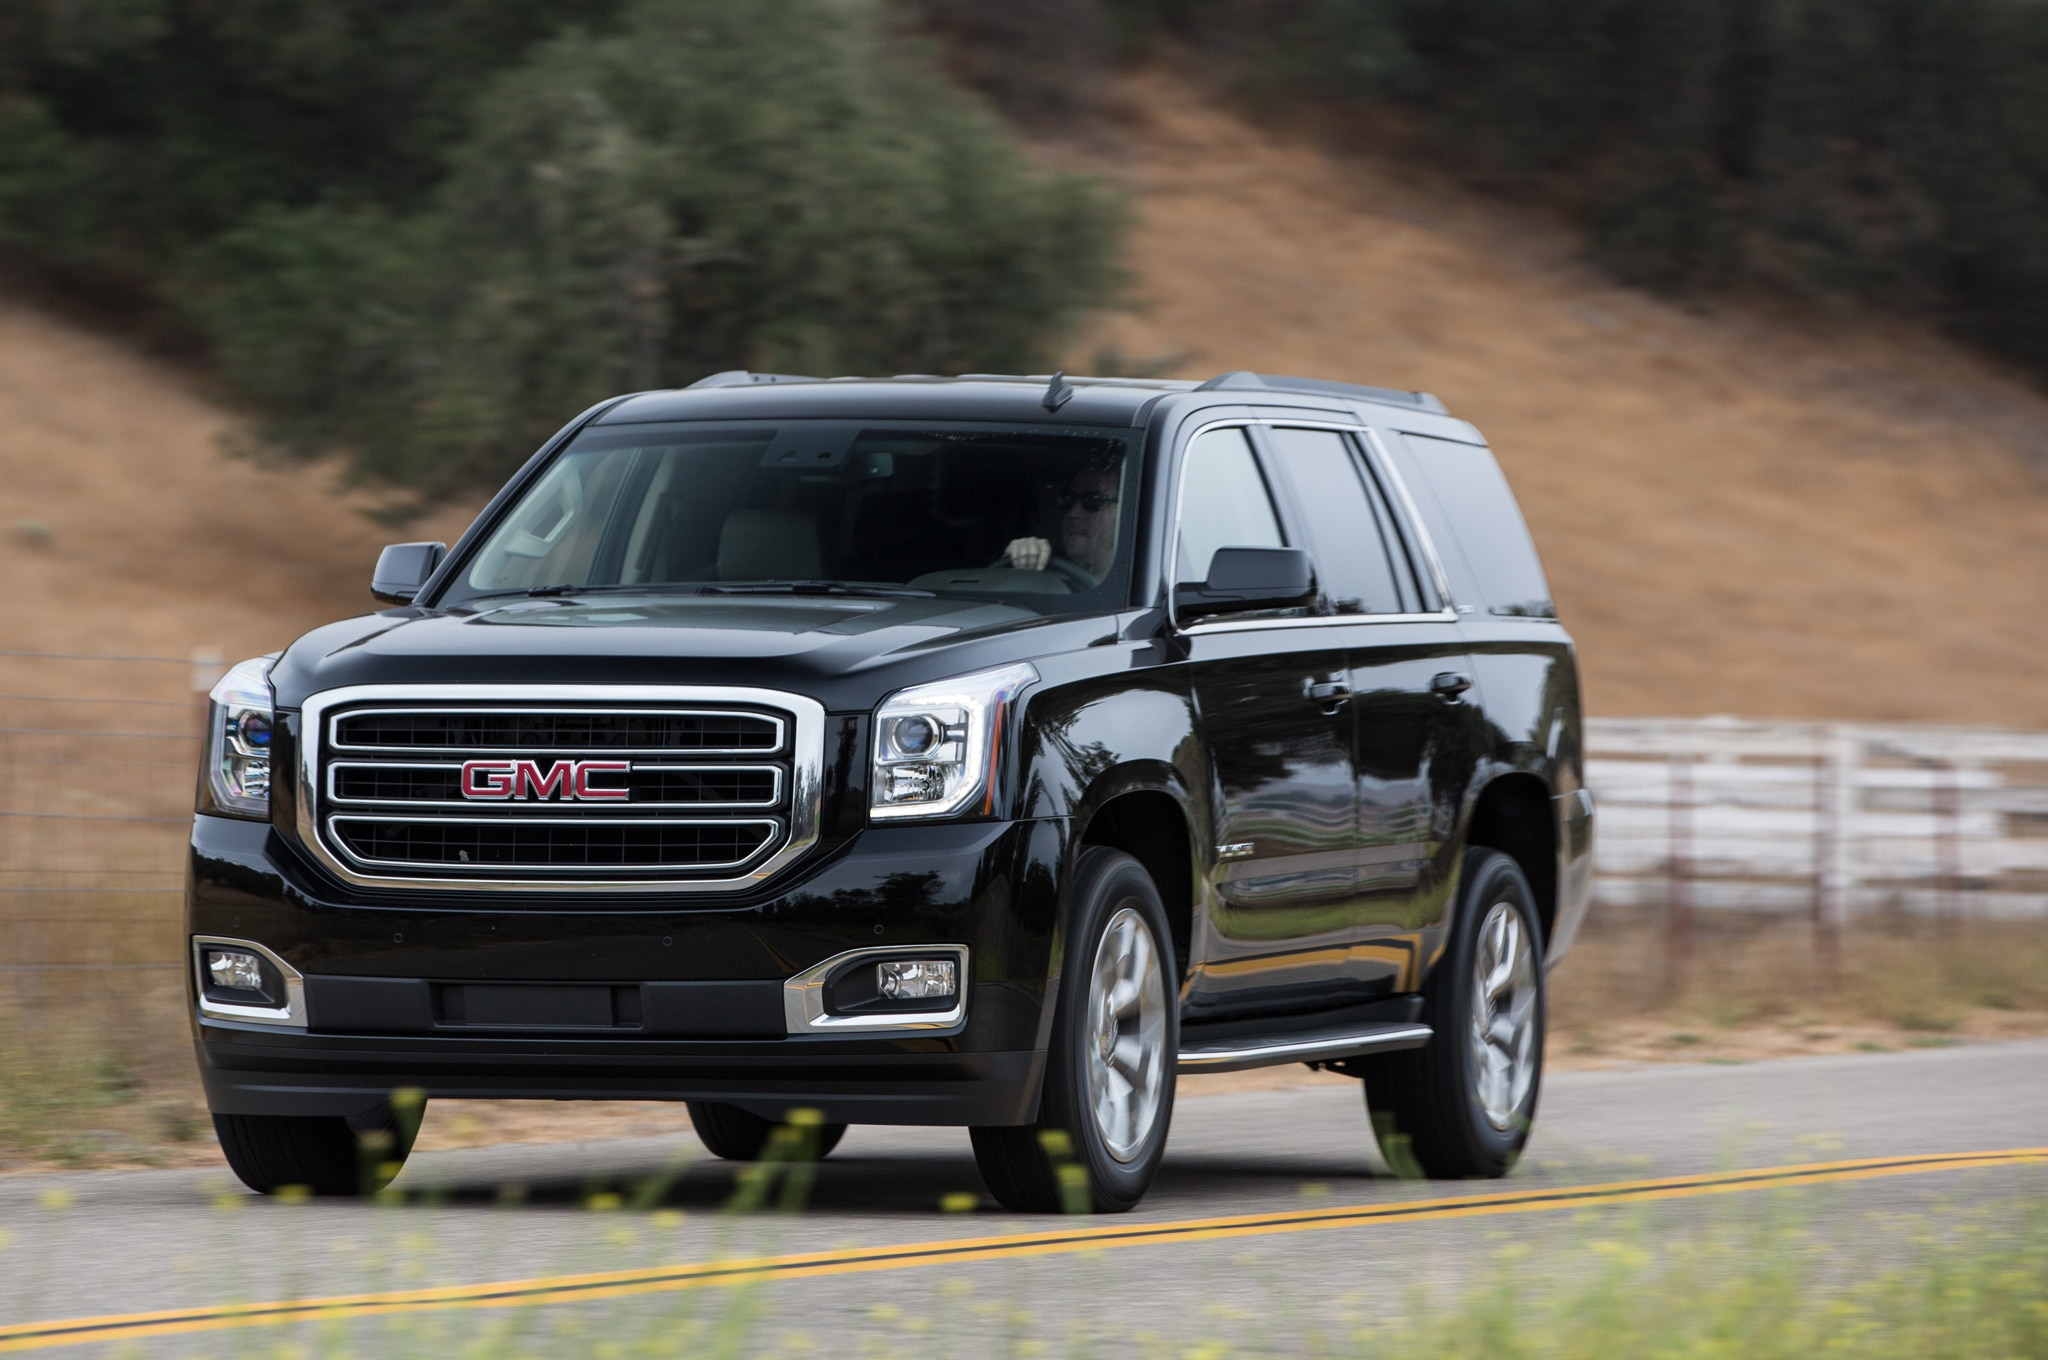 2015 gmc yukon and yukon xl review automobile magazine. Black Bedroom Furniture Sets. Home Design Ideas